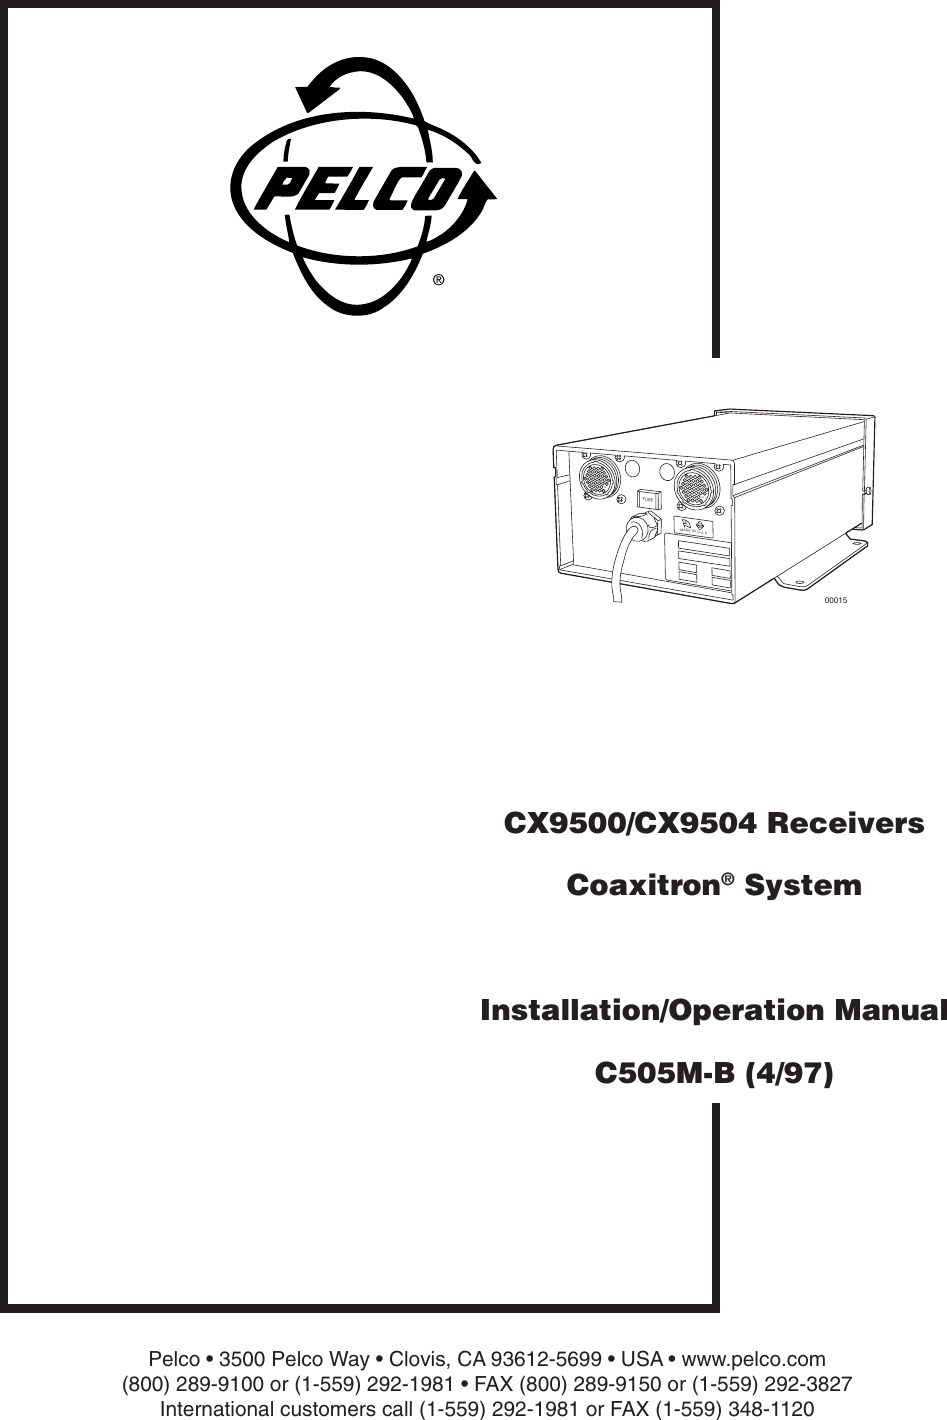 Pelco Home Security System C505m B Users Manual Cx9500 Cx9504 Rs485 Ptz Wiring Diagram Receivers Coaxitron